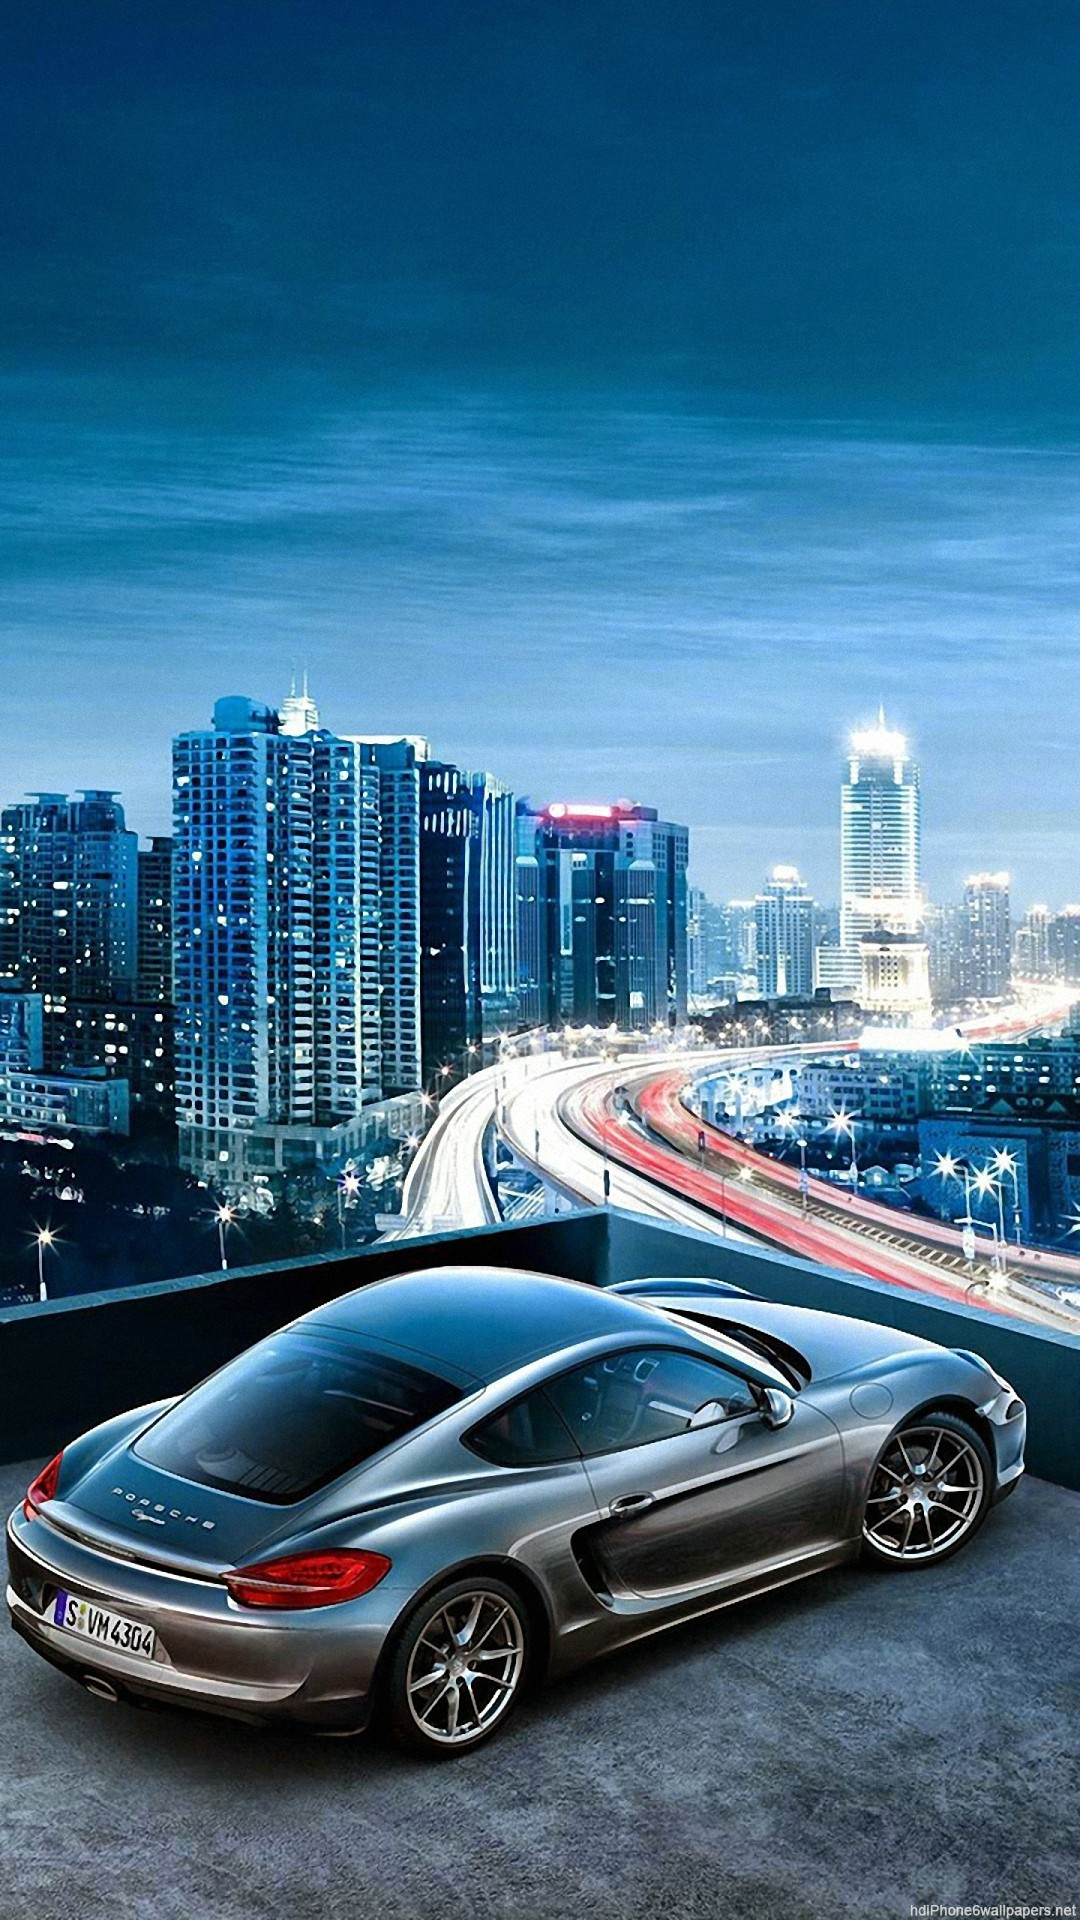 1080x1920 HD Porsche Car Sky City View Iphone 6 Wallpaper